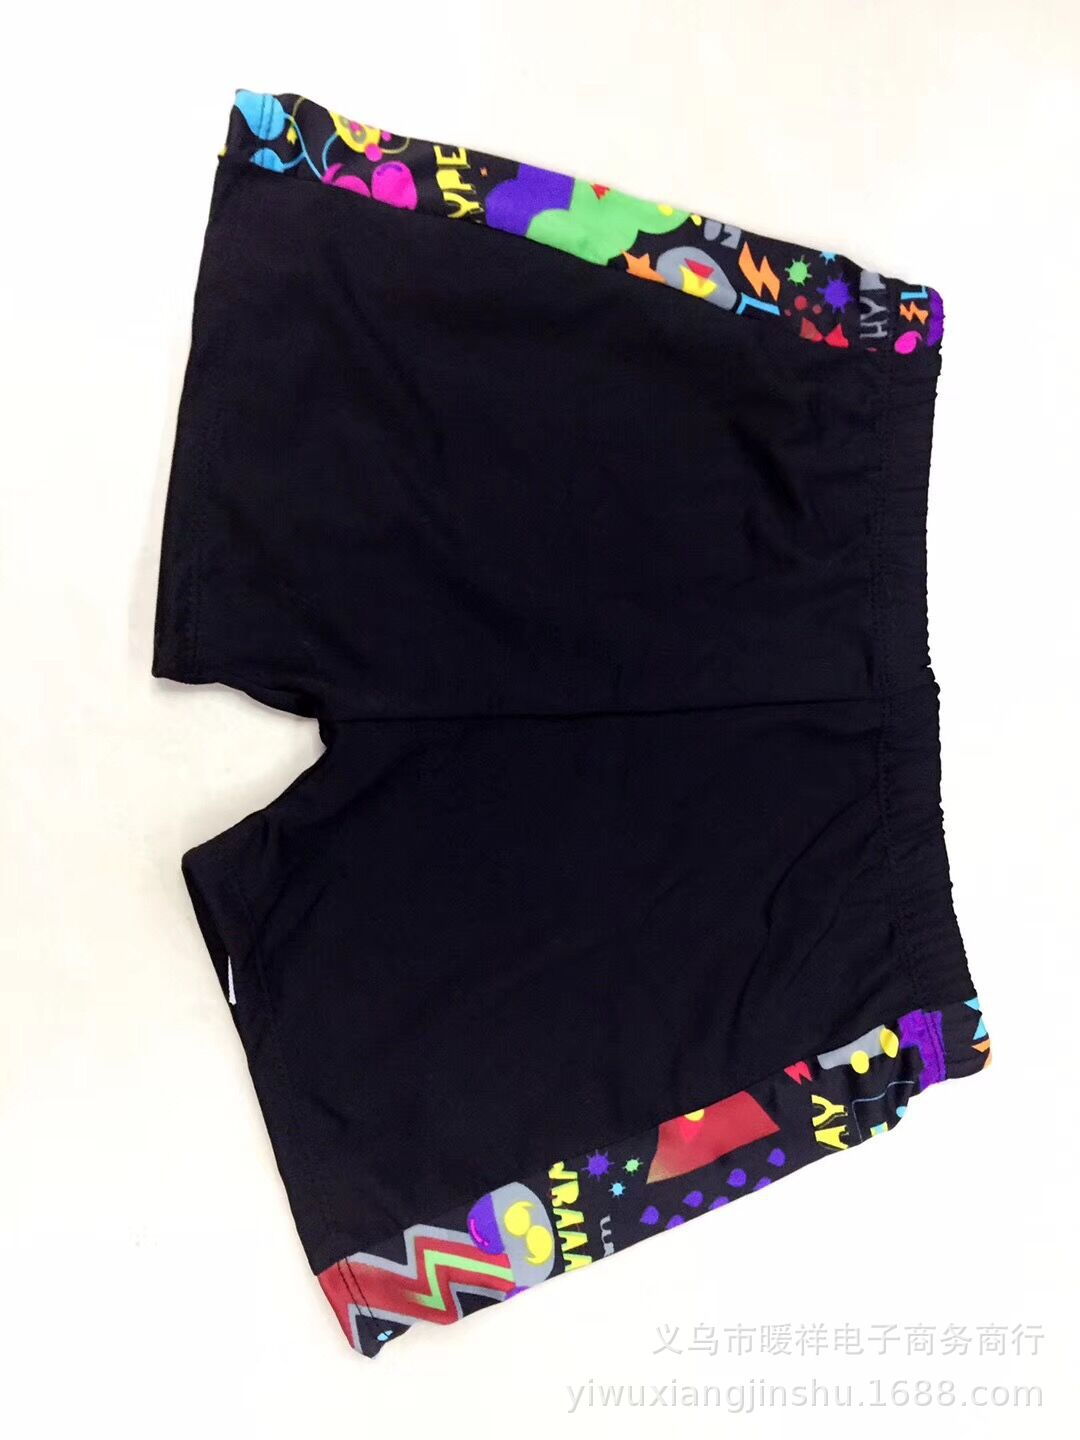 Pure Black Swimming Trunks Boxer Men Ultra-stretch Swimming Pool Hot Springs Plus-sized Adult Swimming Trunks Large Size Bathing